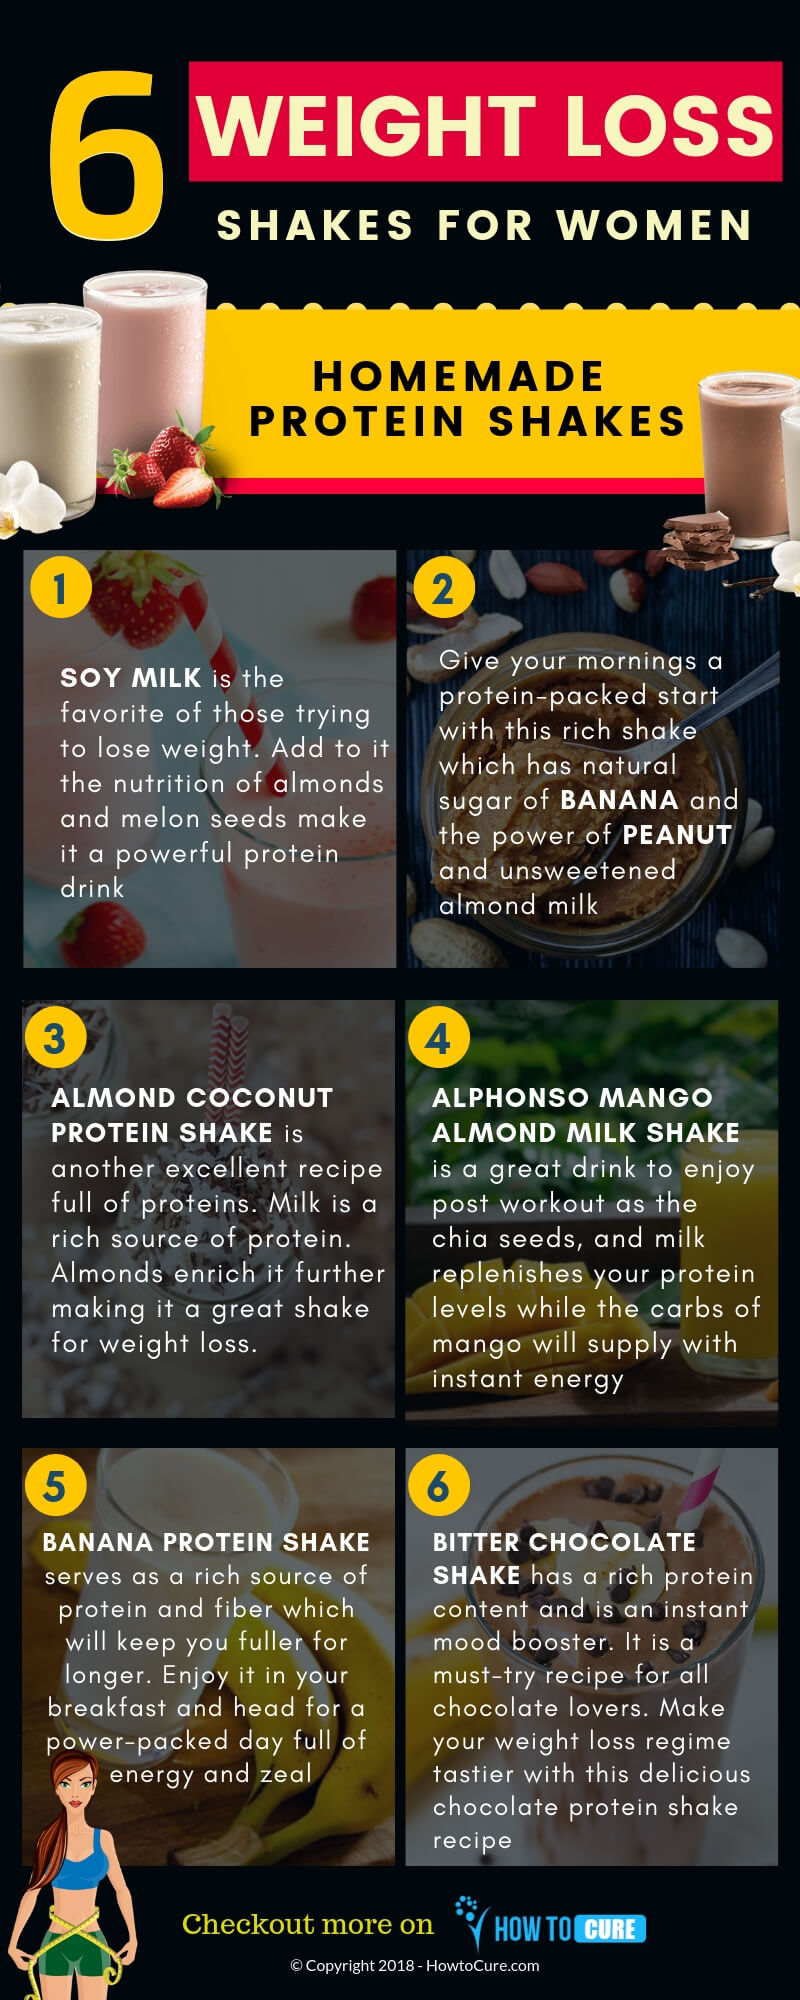 Homemade protein shakes for weight loss